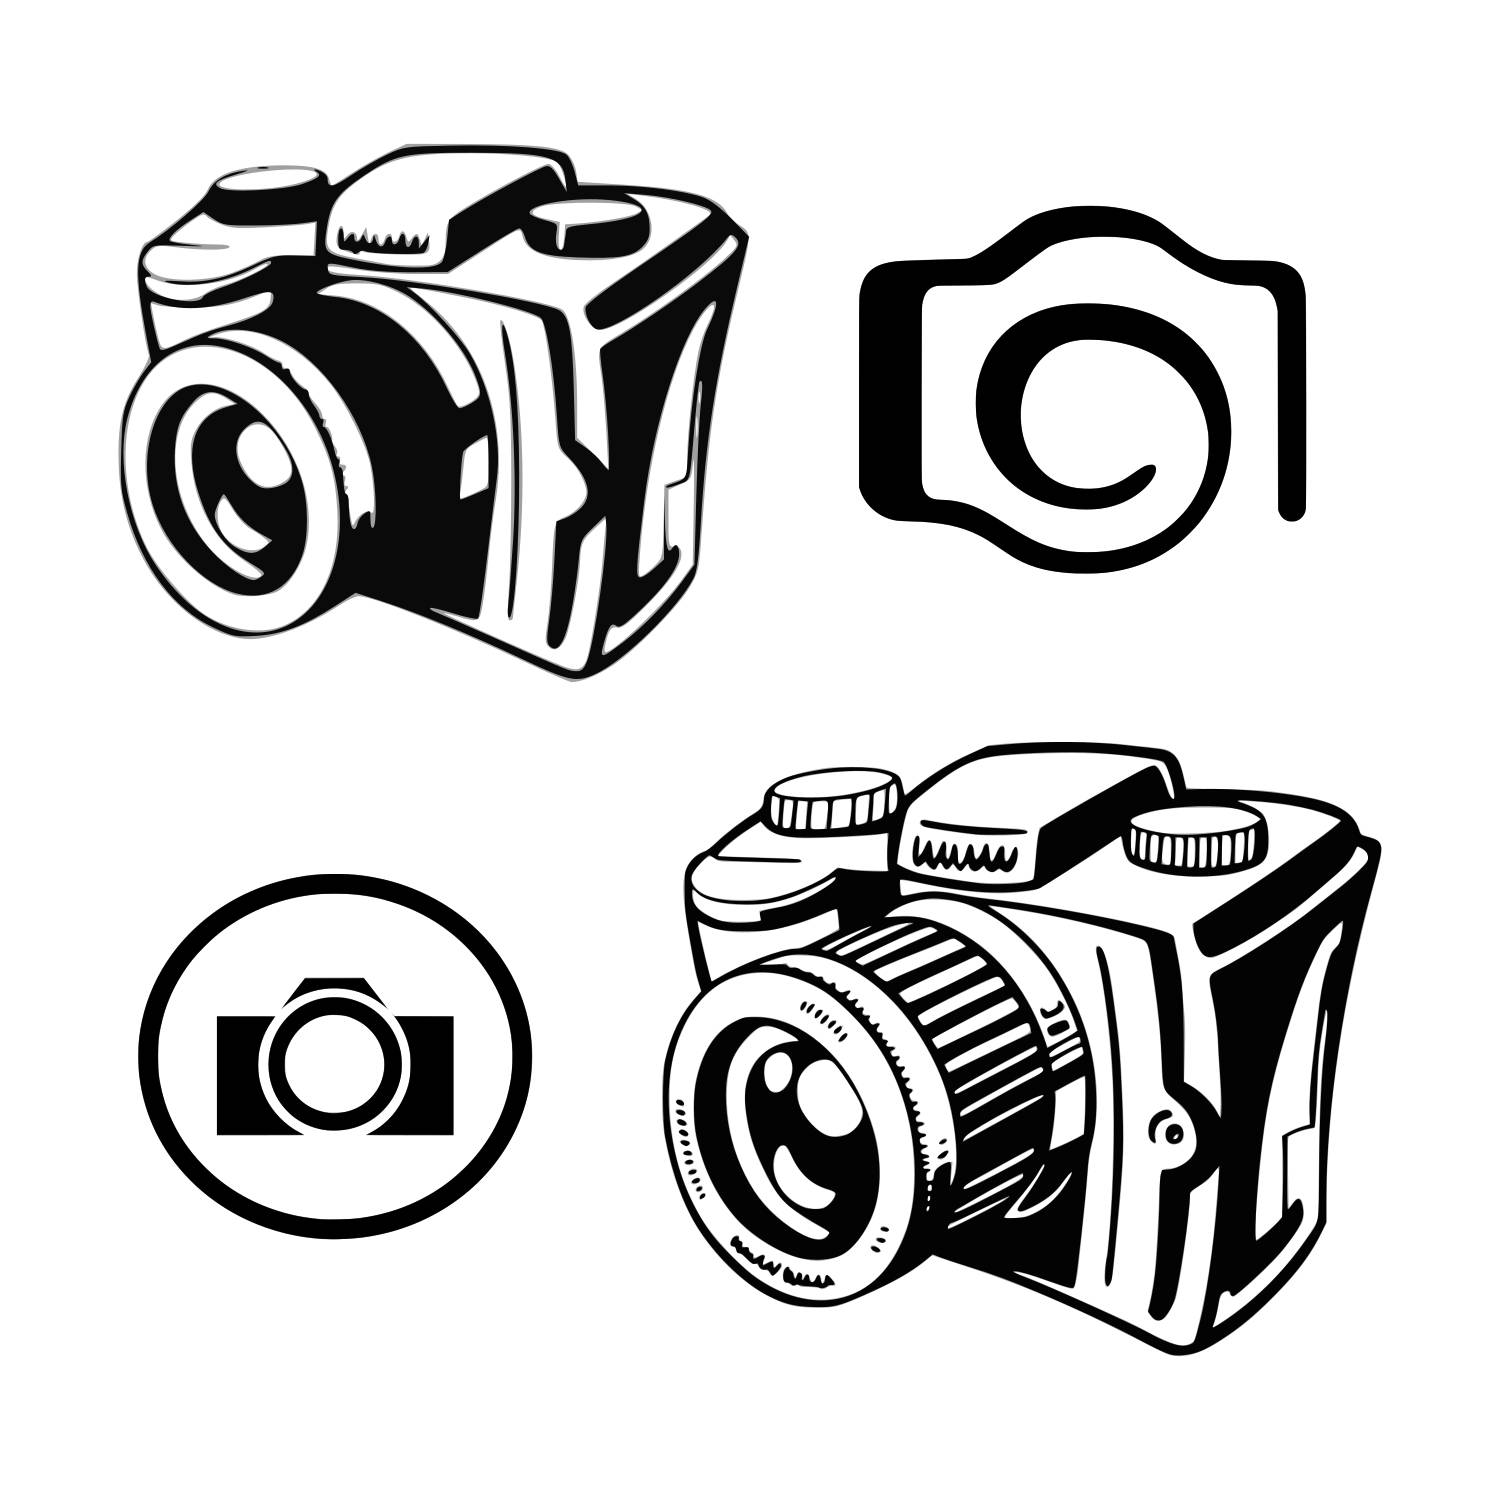 camera silhouette clip art at getdrawings com free for personal rh getdrawings com